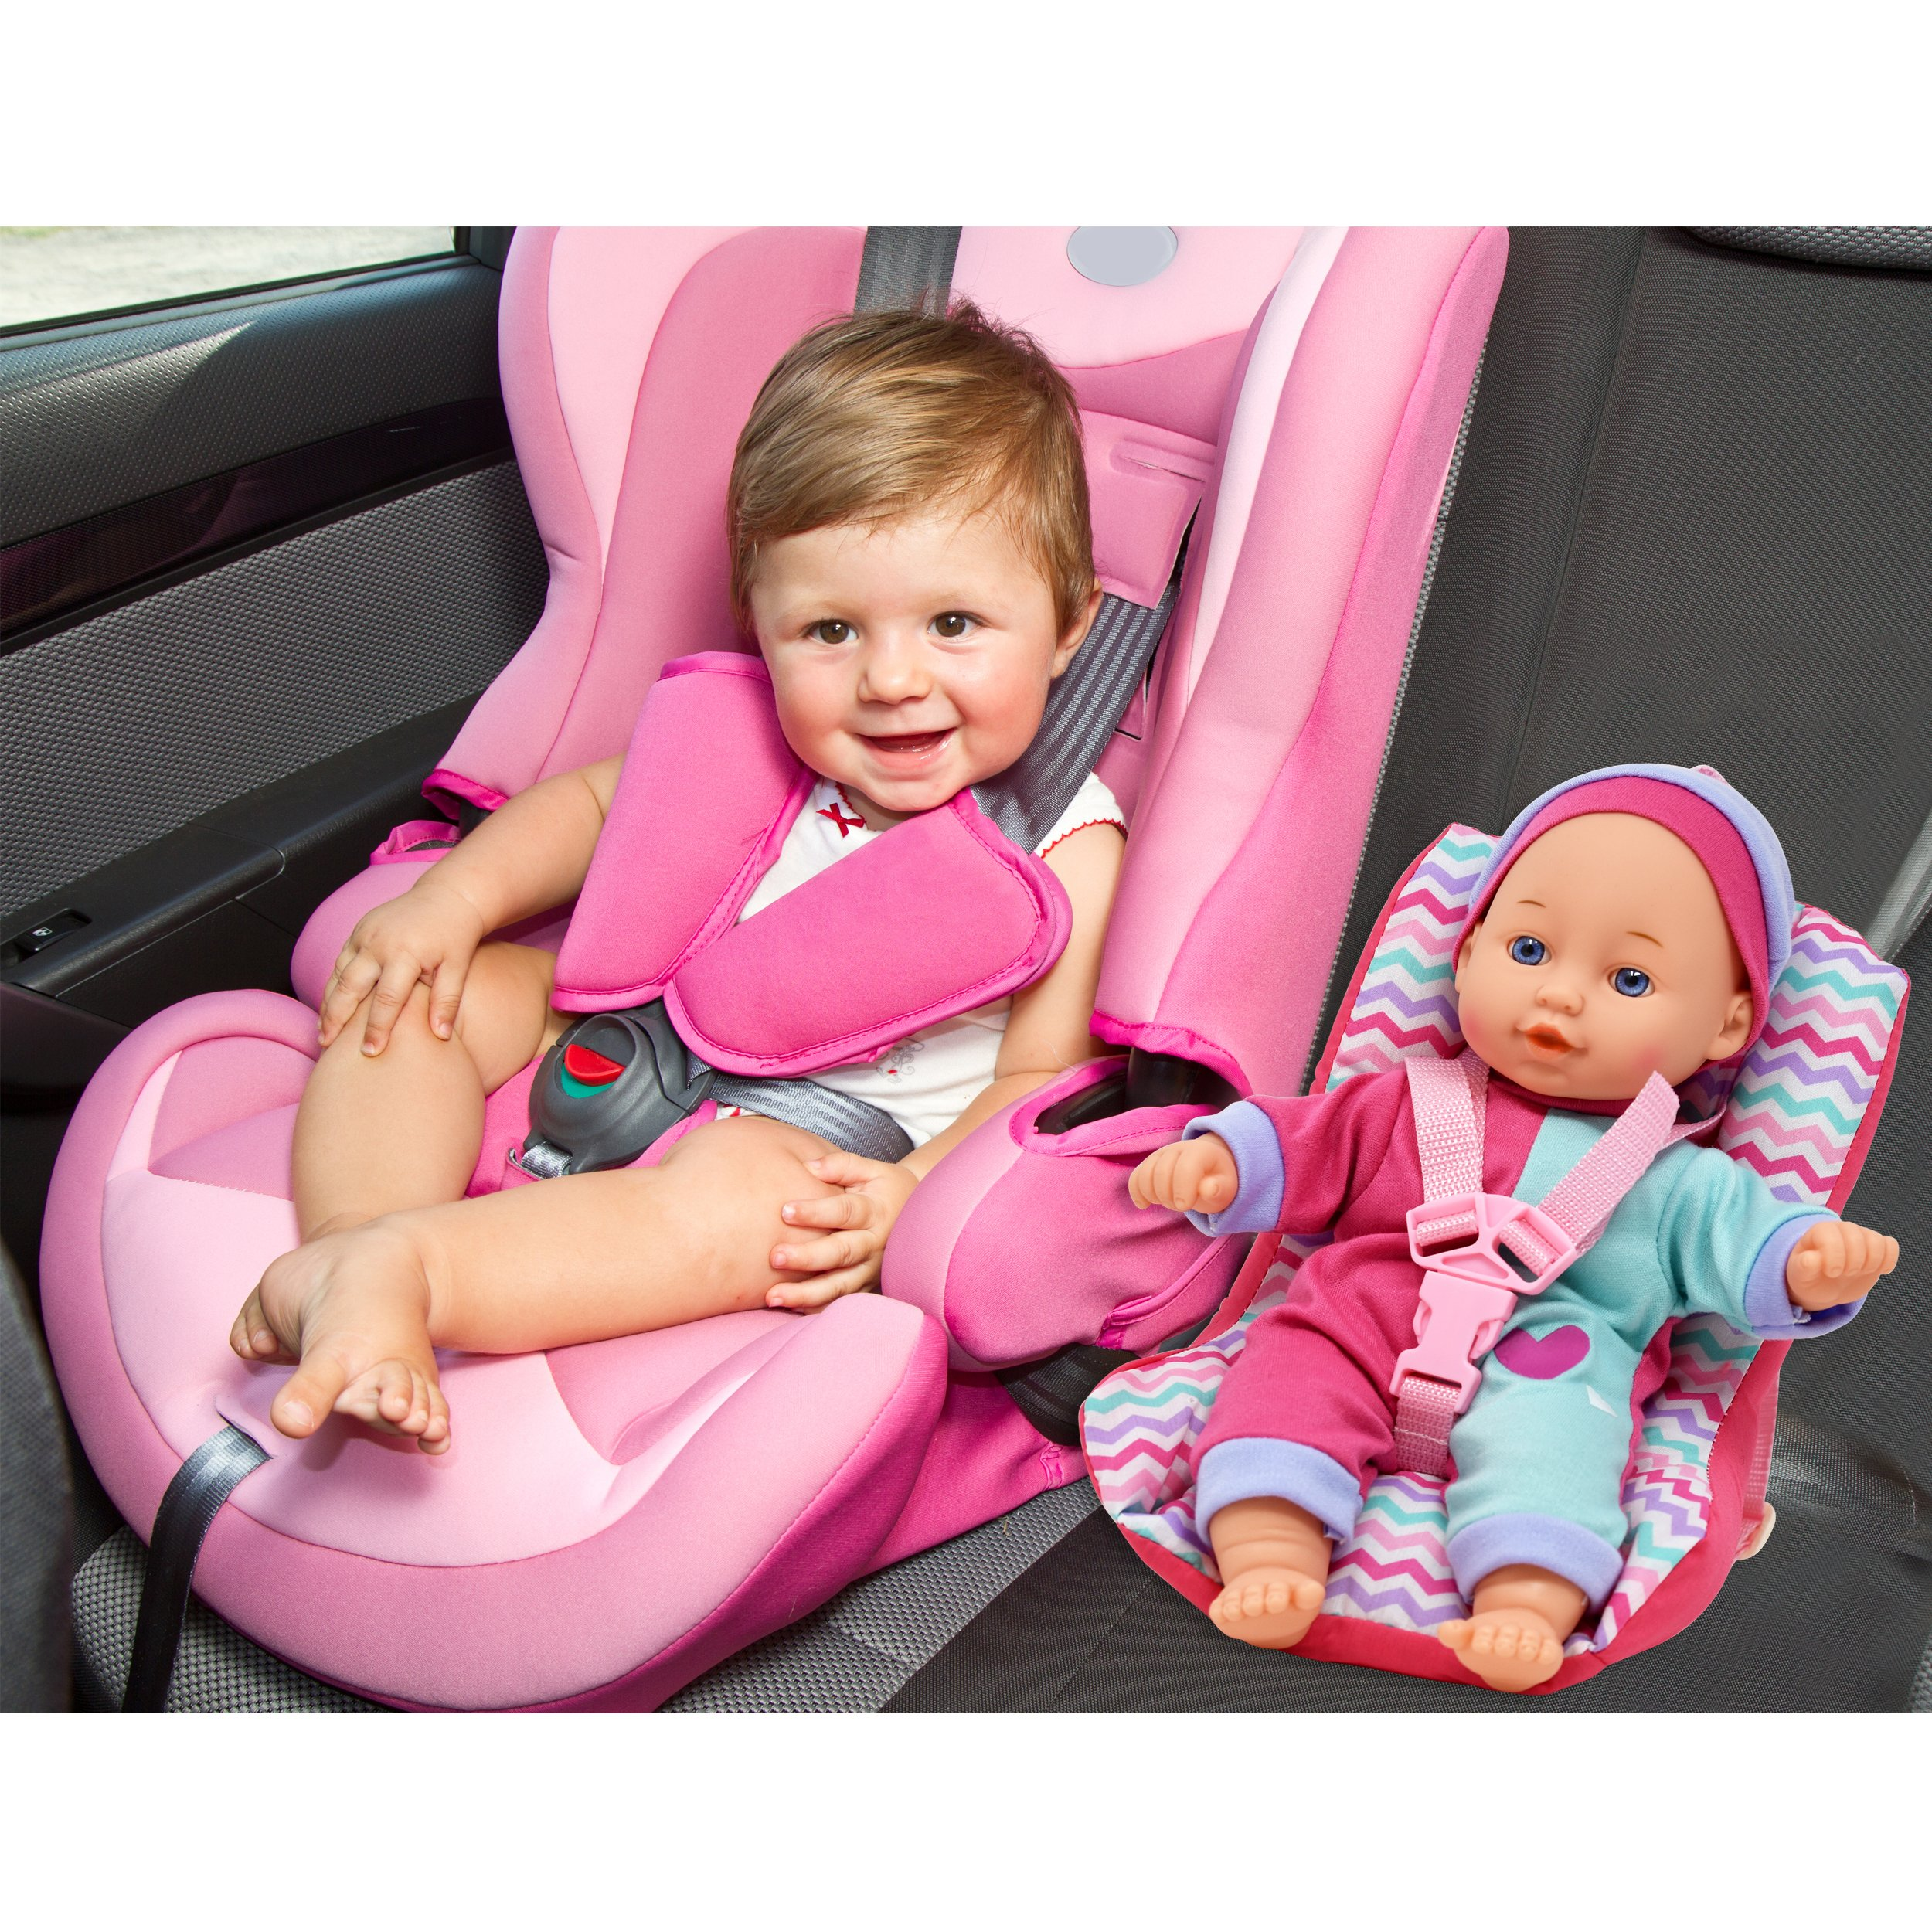 Baby Doll Car Seat with Toy Accessories, Includes 12 Inch Soft Body Doll, Booster Seat Carrier